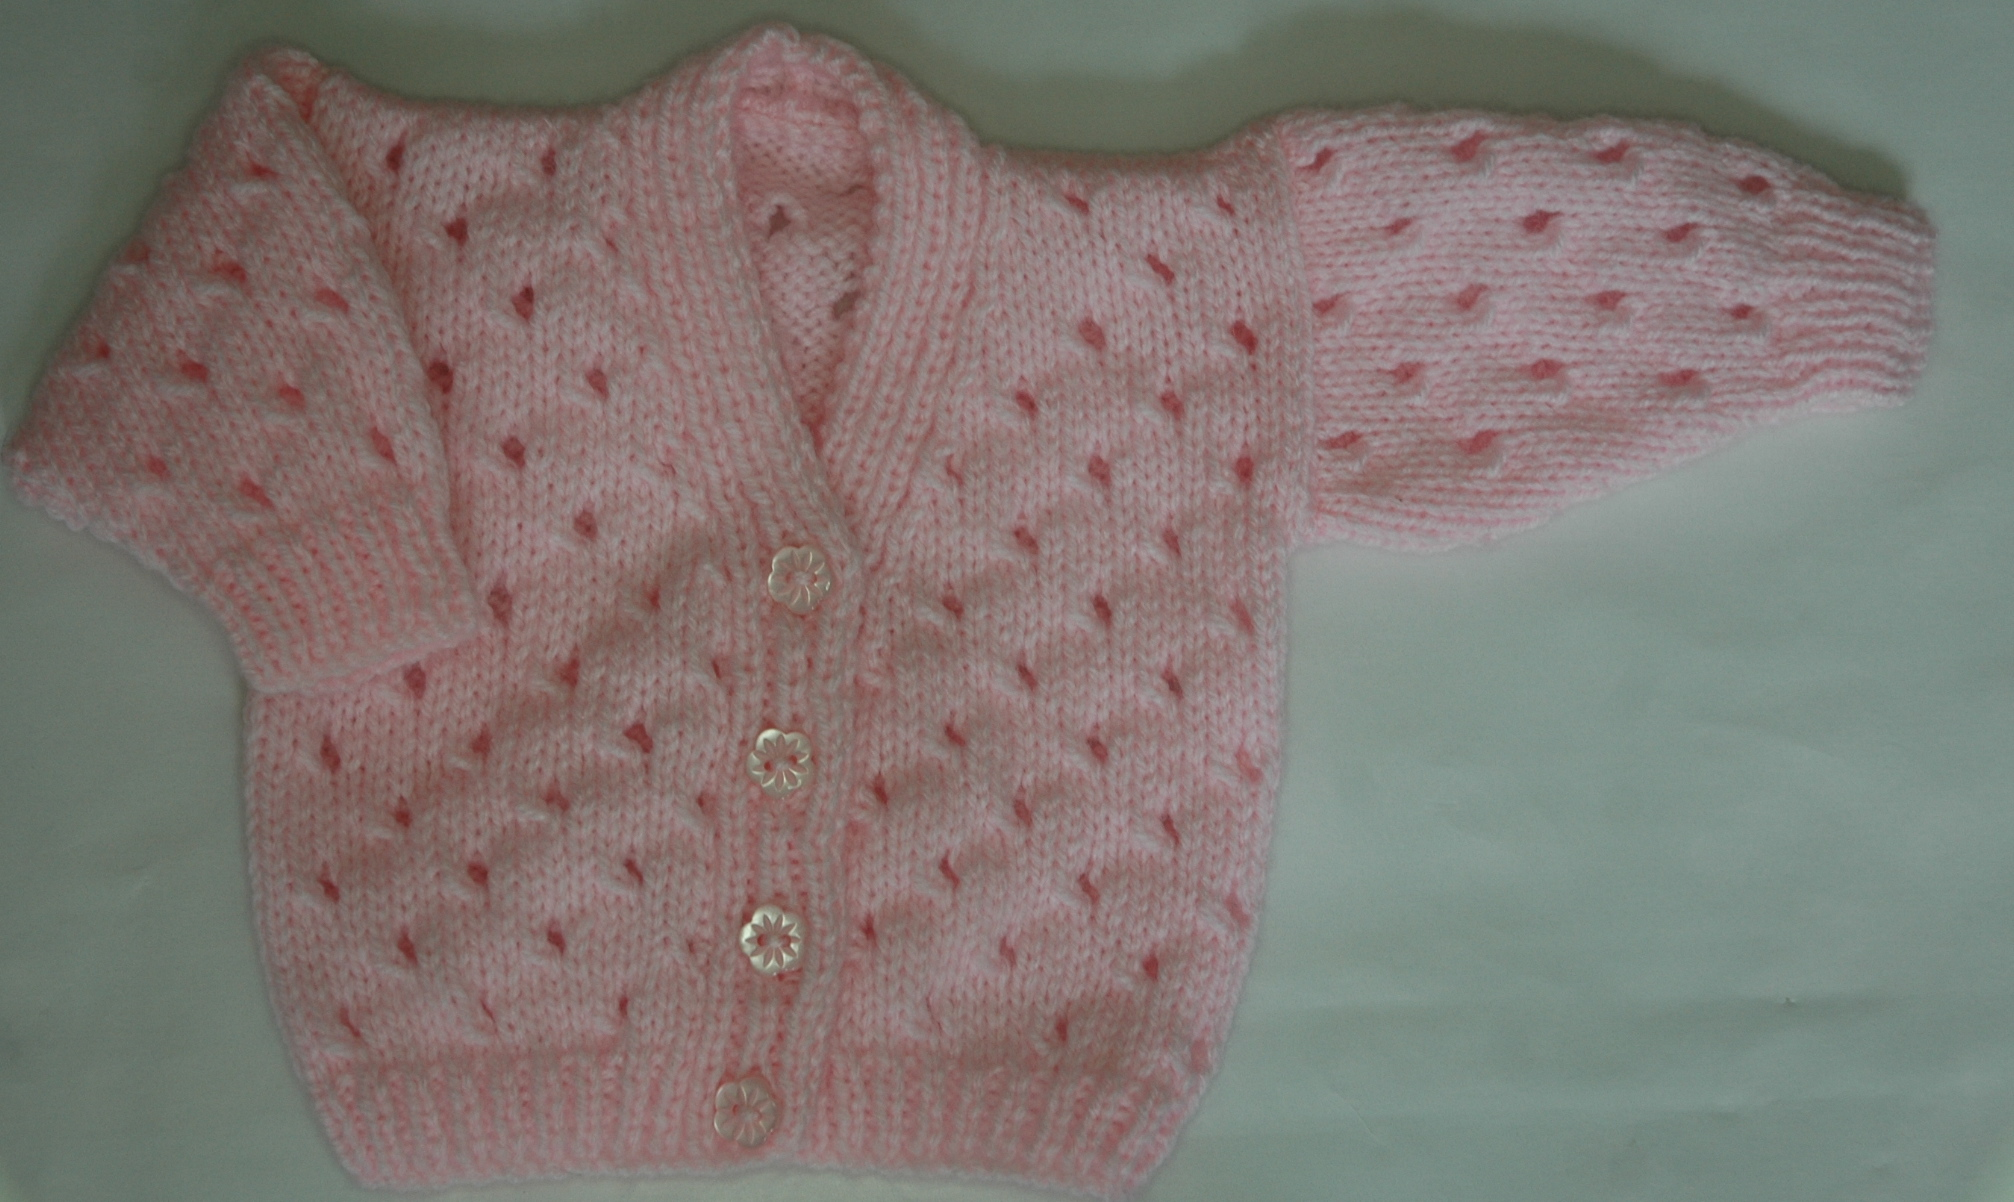 Knitting Pattern Baby Cardigan Newborn : Knitting Pattern For Baby Cardigan Uk - Cardigan With Buttons